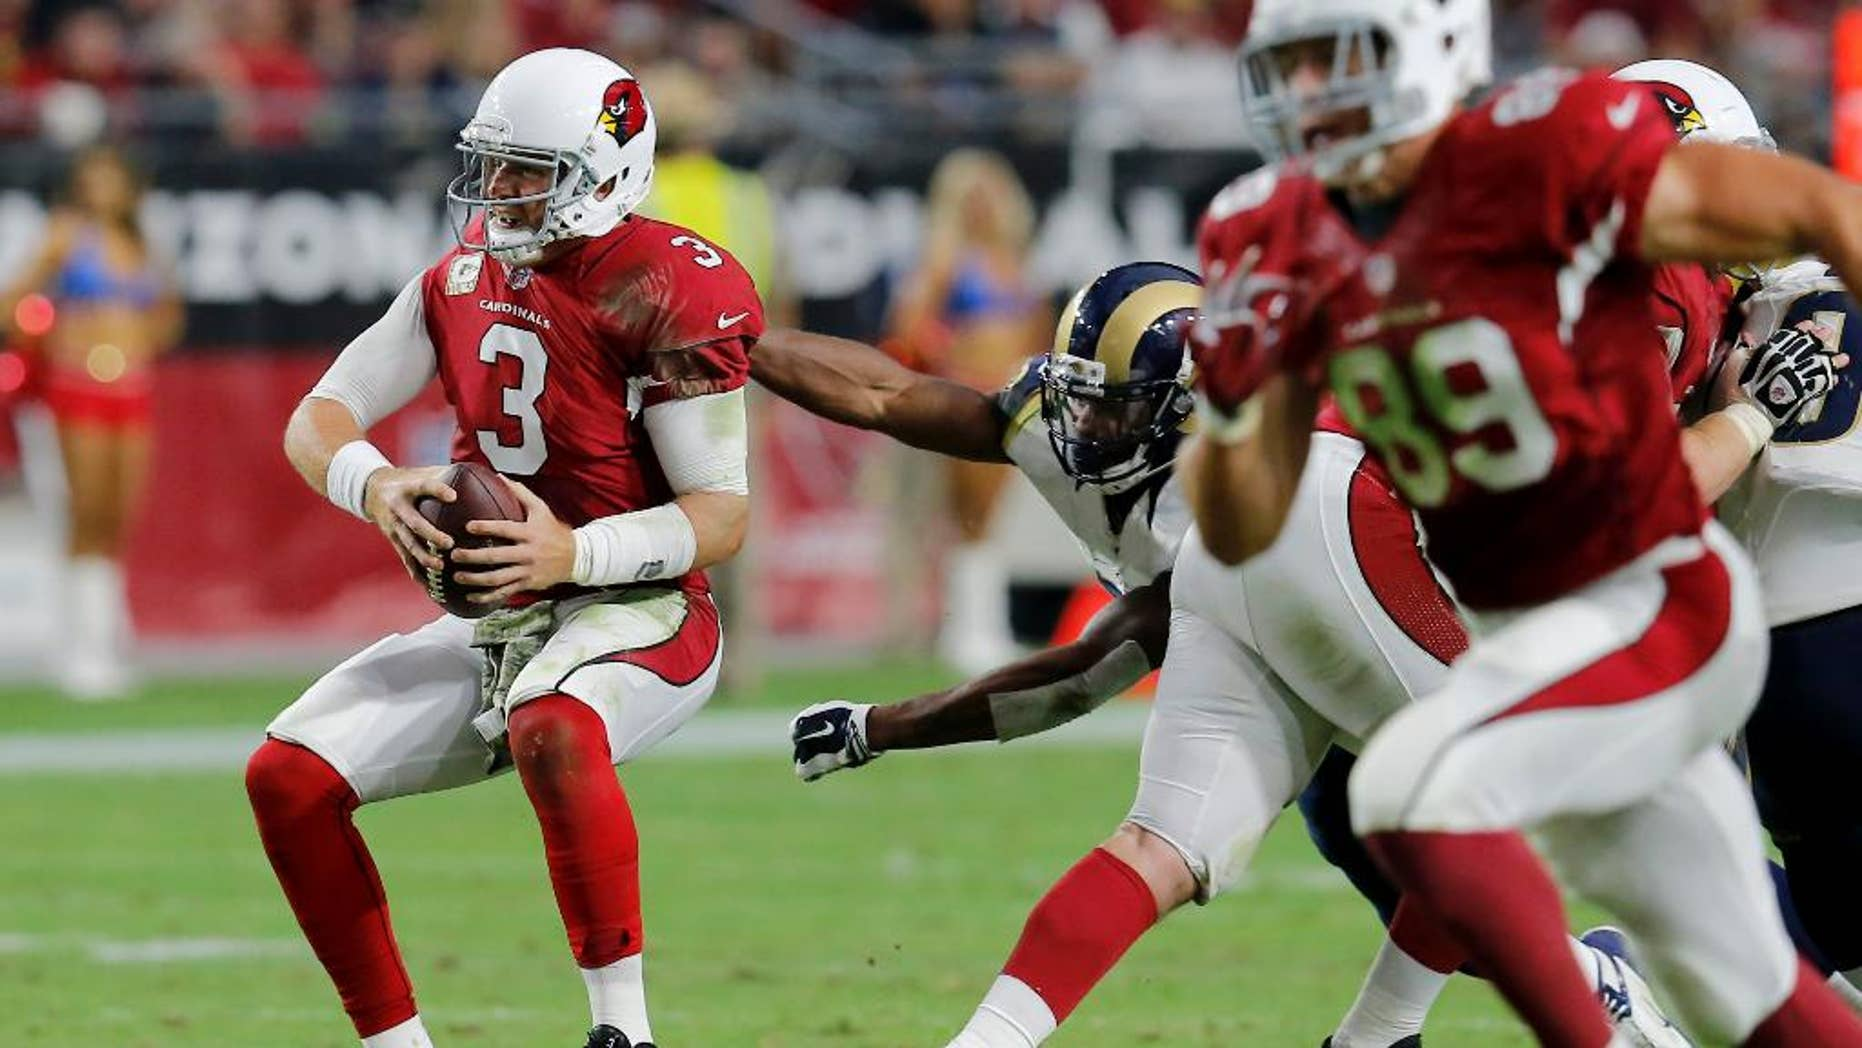 Arizona Cardinals quarterback Carson Palmer (3) falls after injuring his left knee during the second half of an NFL football game against the St. Louis Rams, Sunday, Nov. 9, 2014, in Glendale, Ariz. (AP Photo/Rick Scuteri)